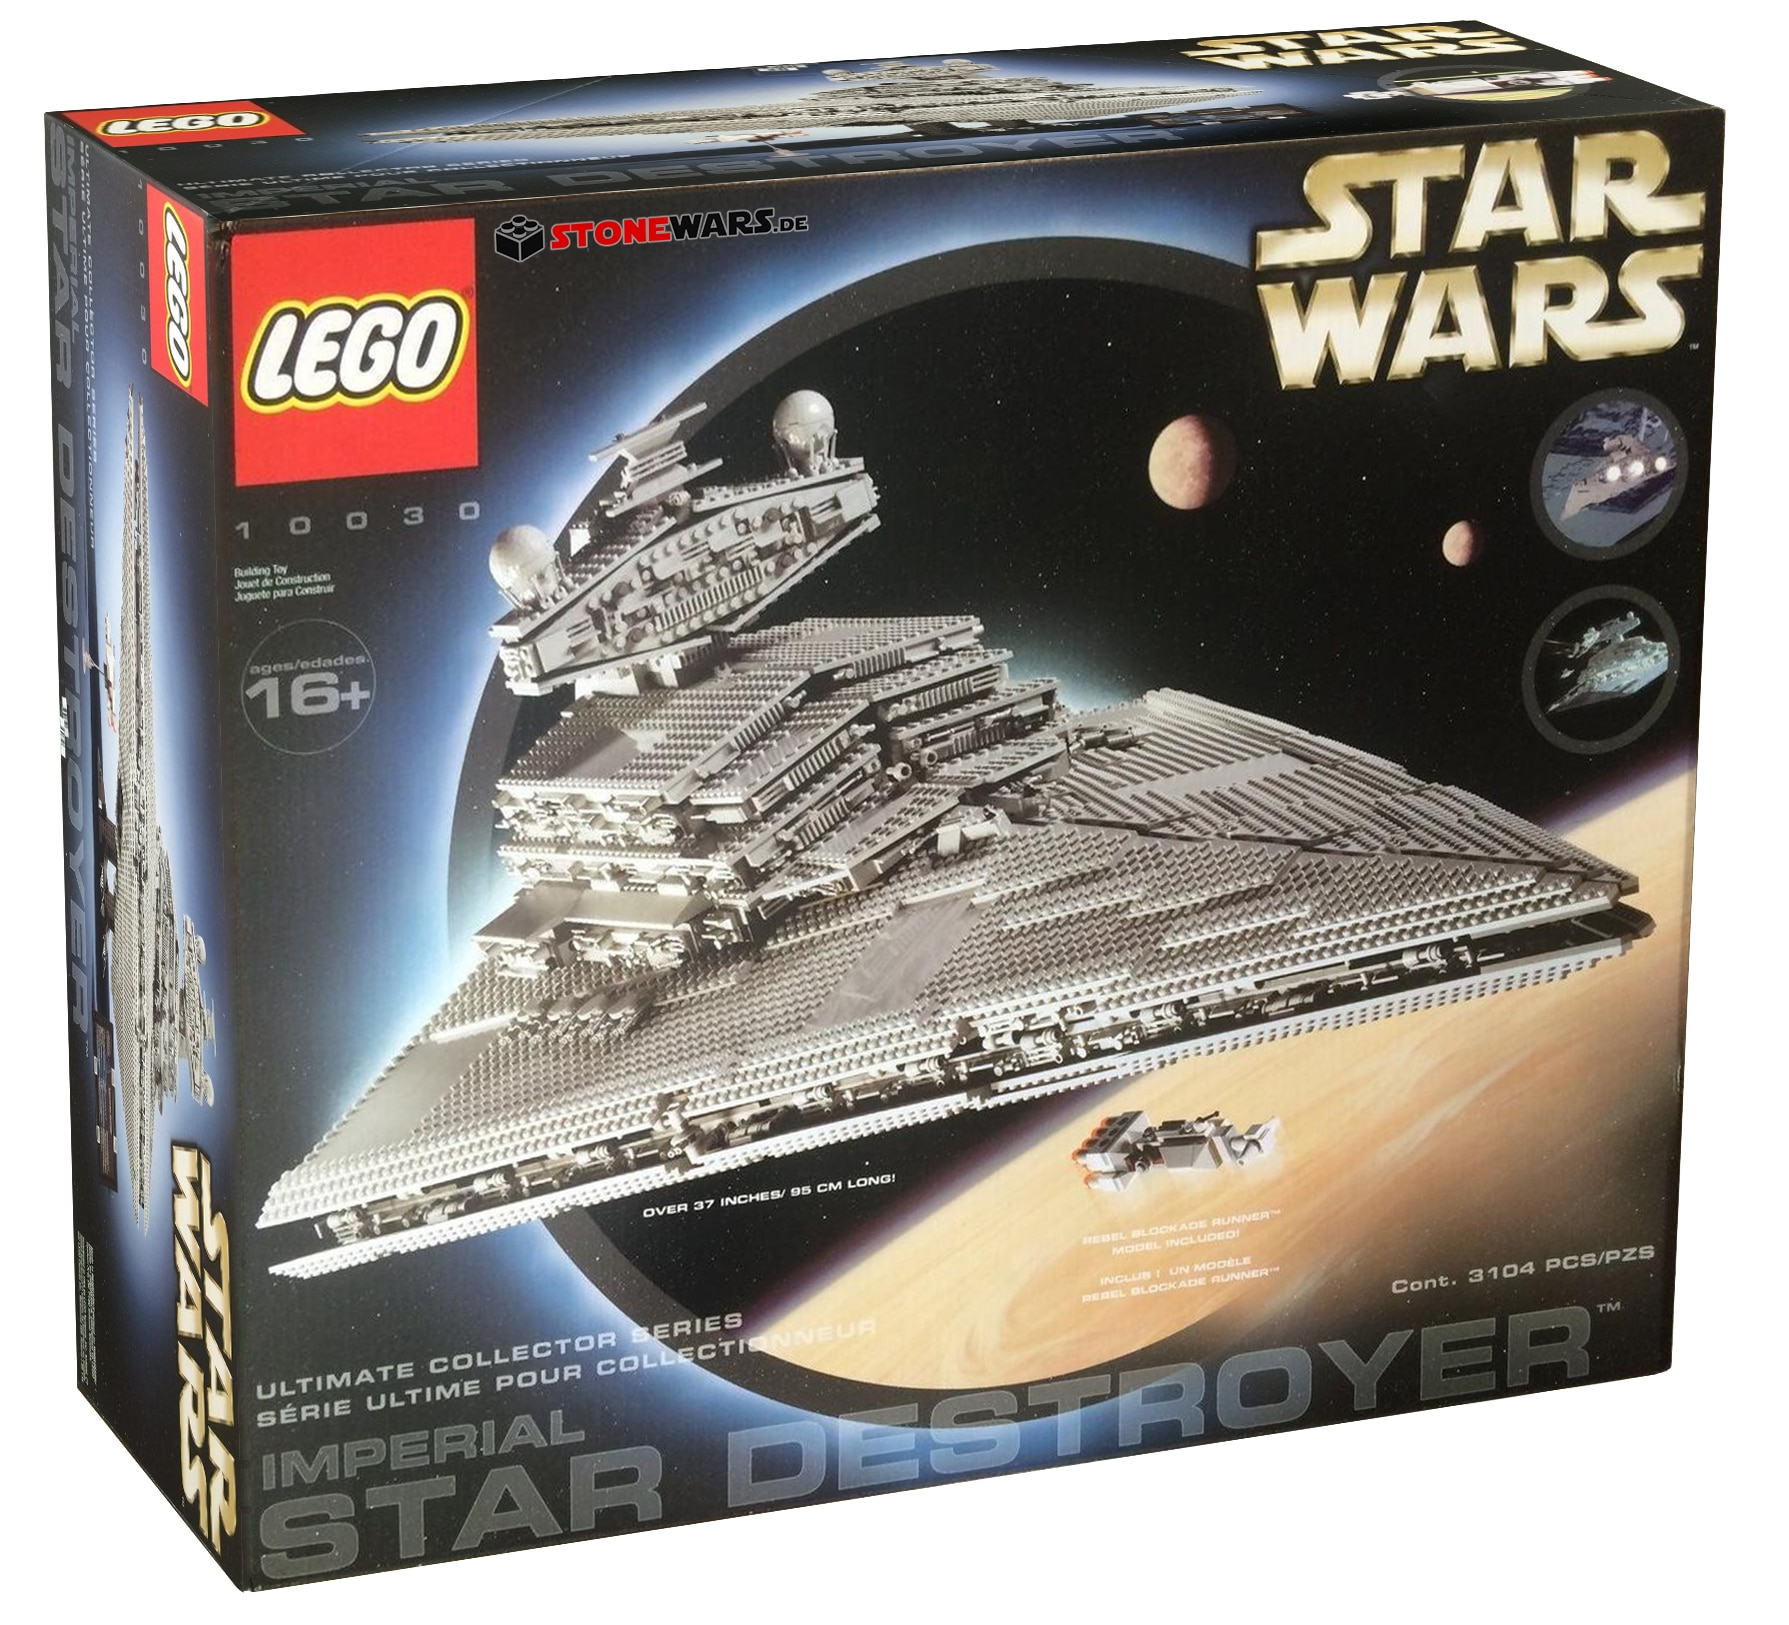 LEGO 10030 Imperial Star Destroyer Box